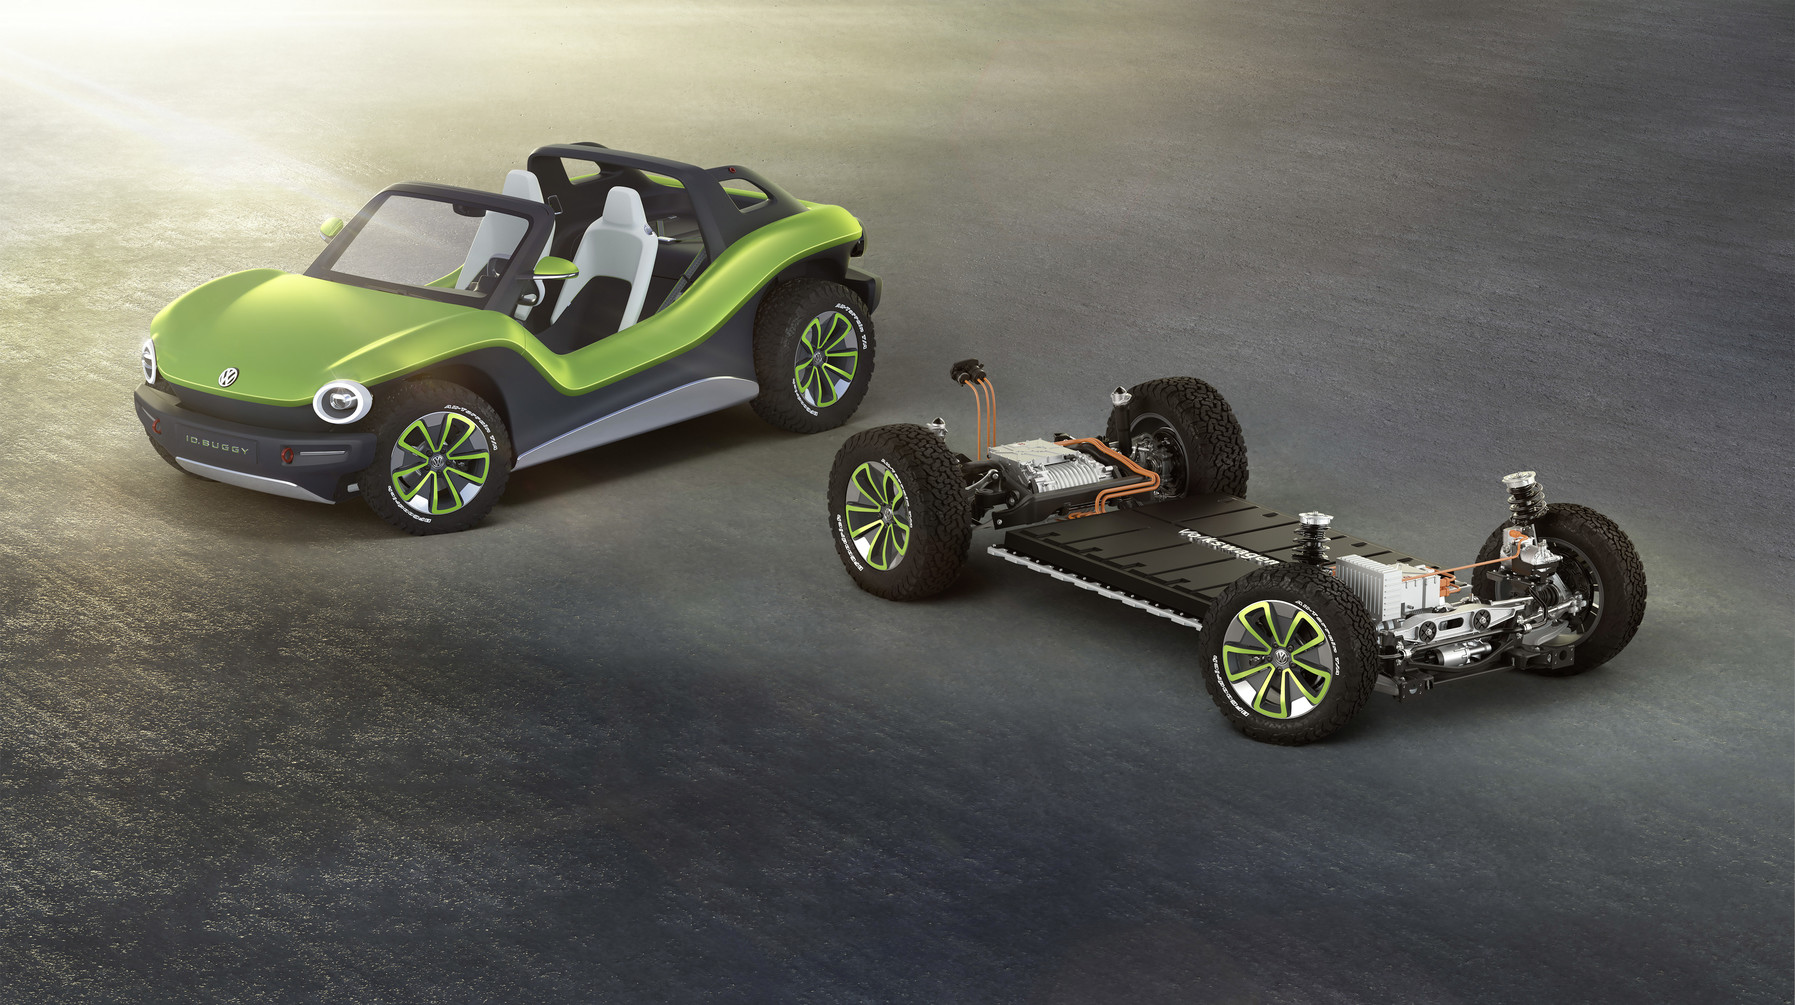 Volkswagen I.D. Buggy next to the electric chassis